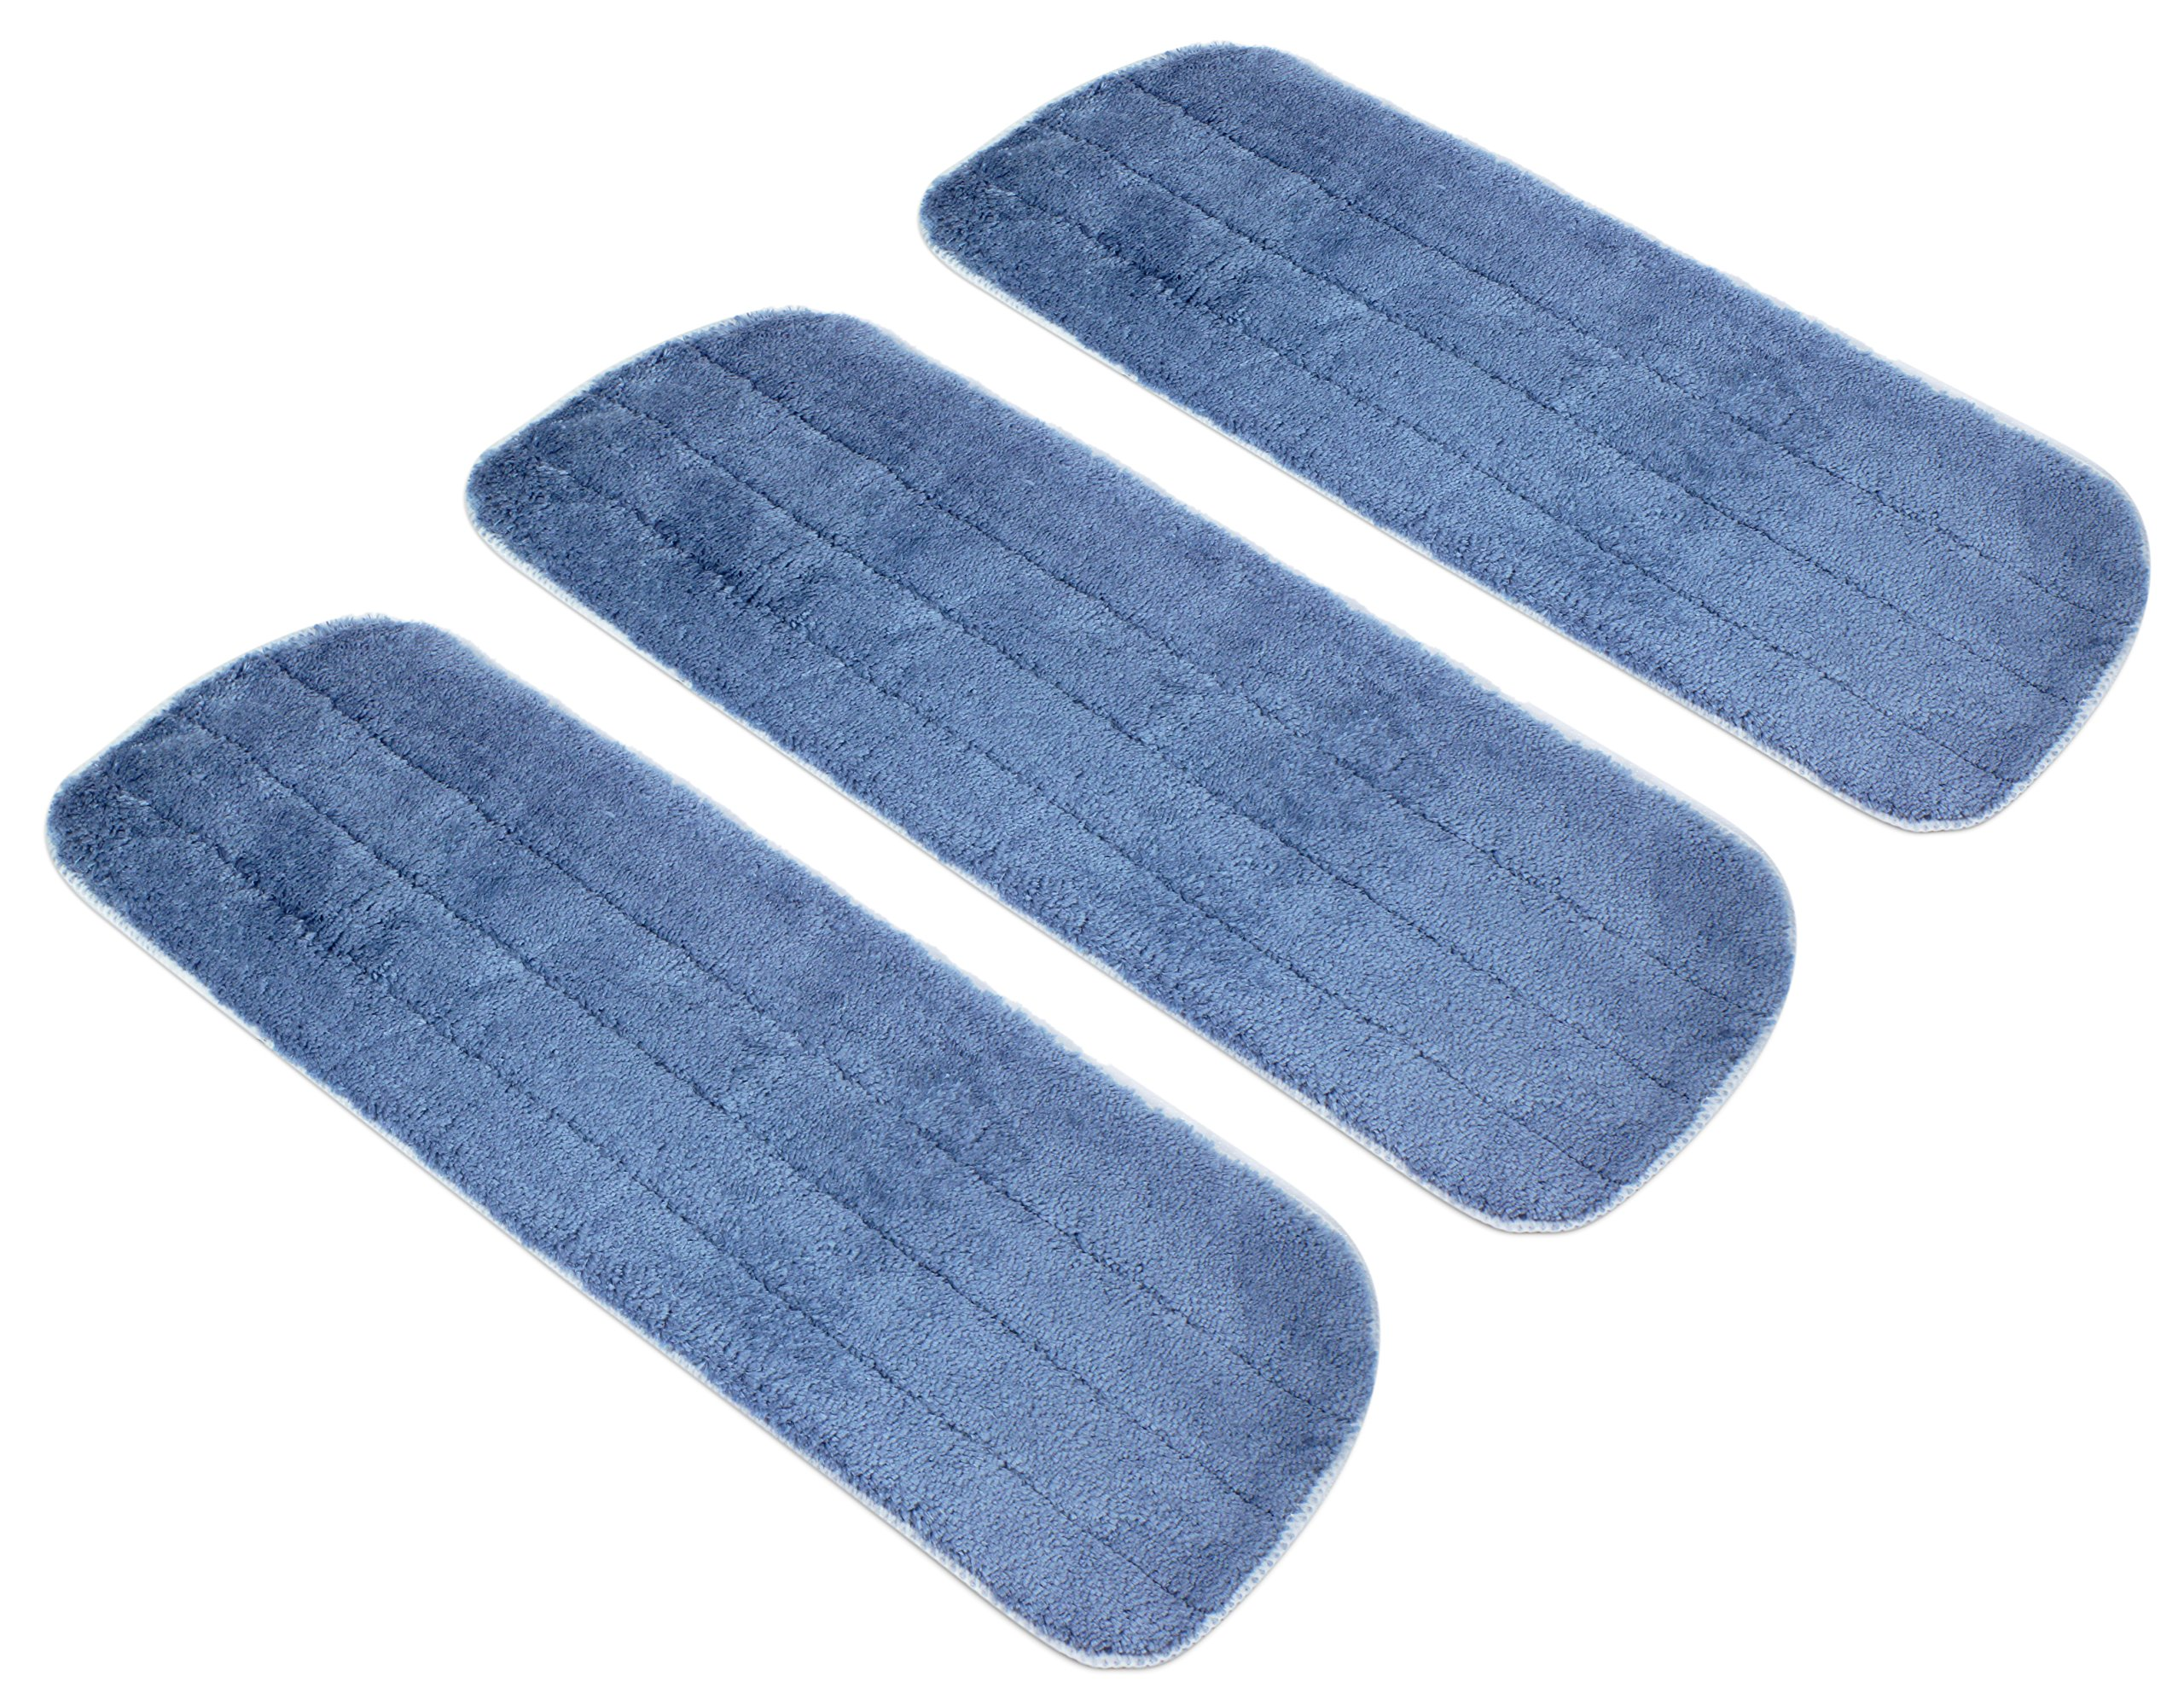 Microfiber Mop Replacement Heads 3 Pack - Premium Reusable Washable Wet/Dry Mop